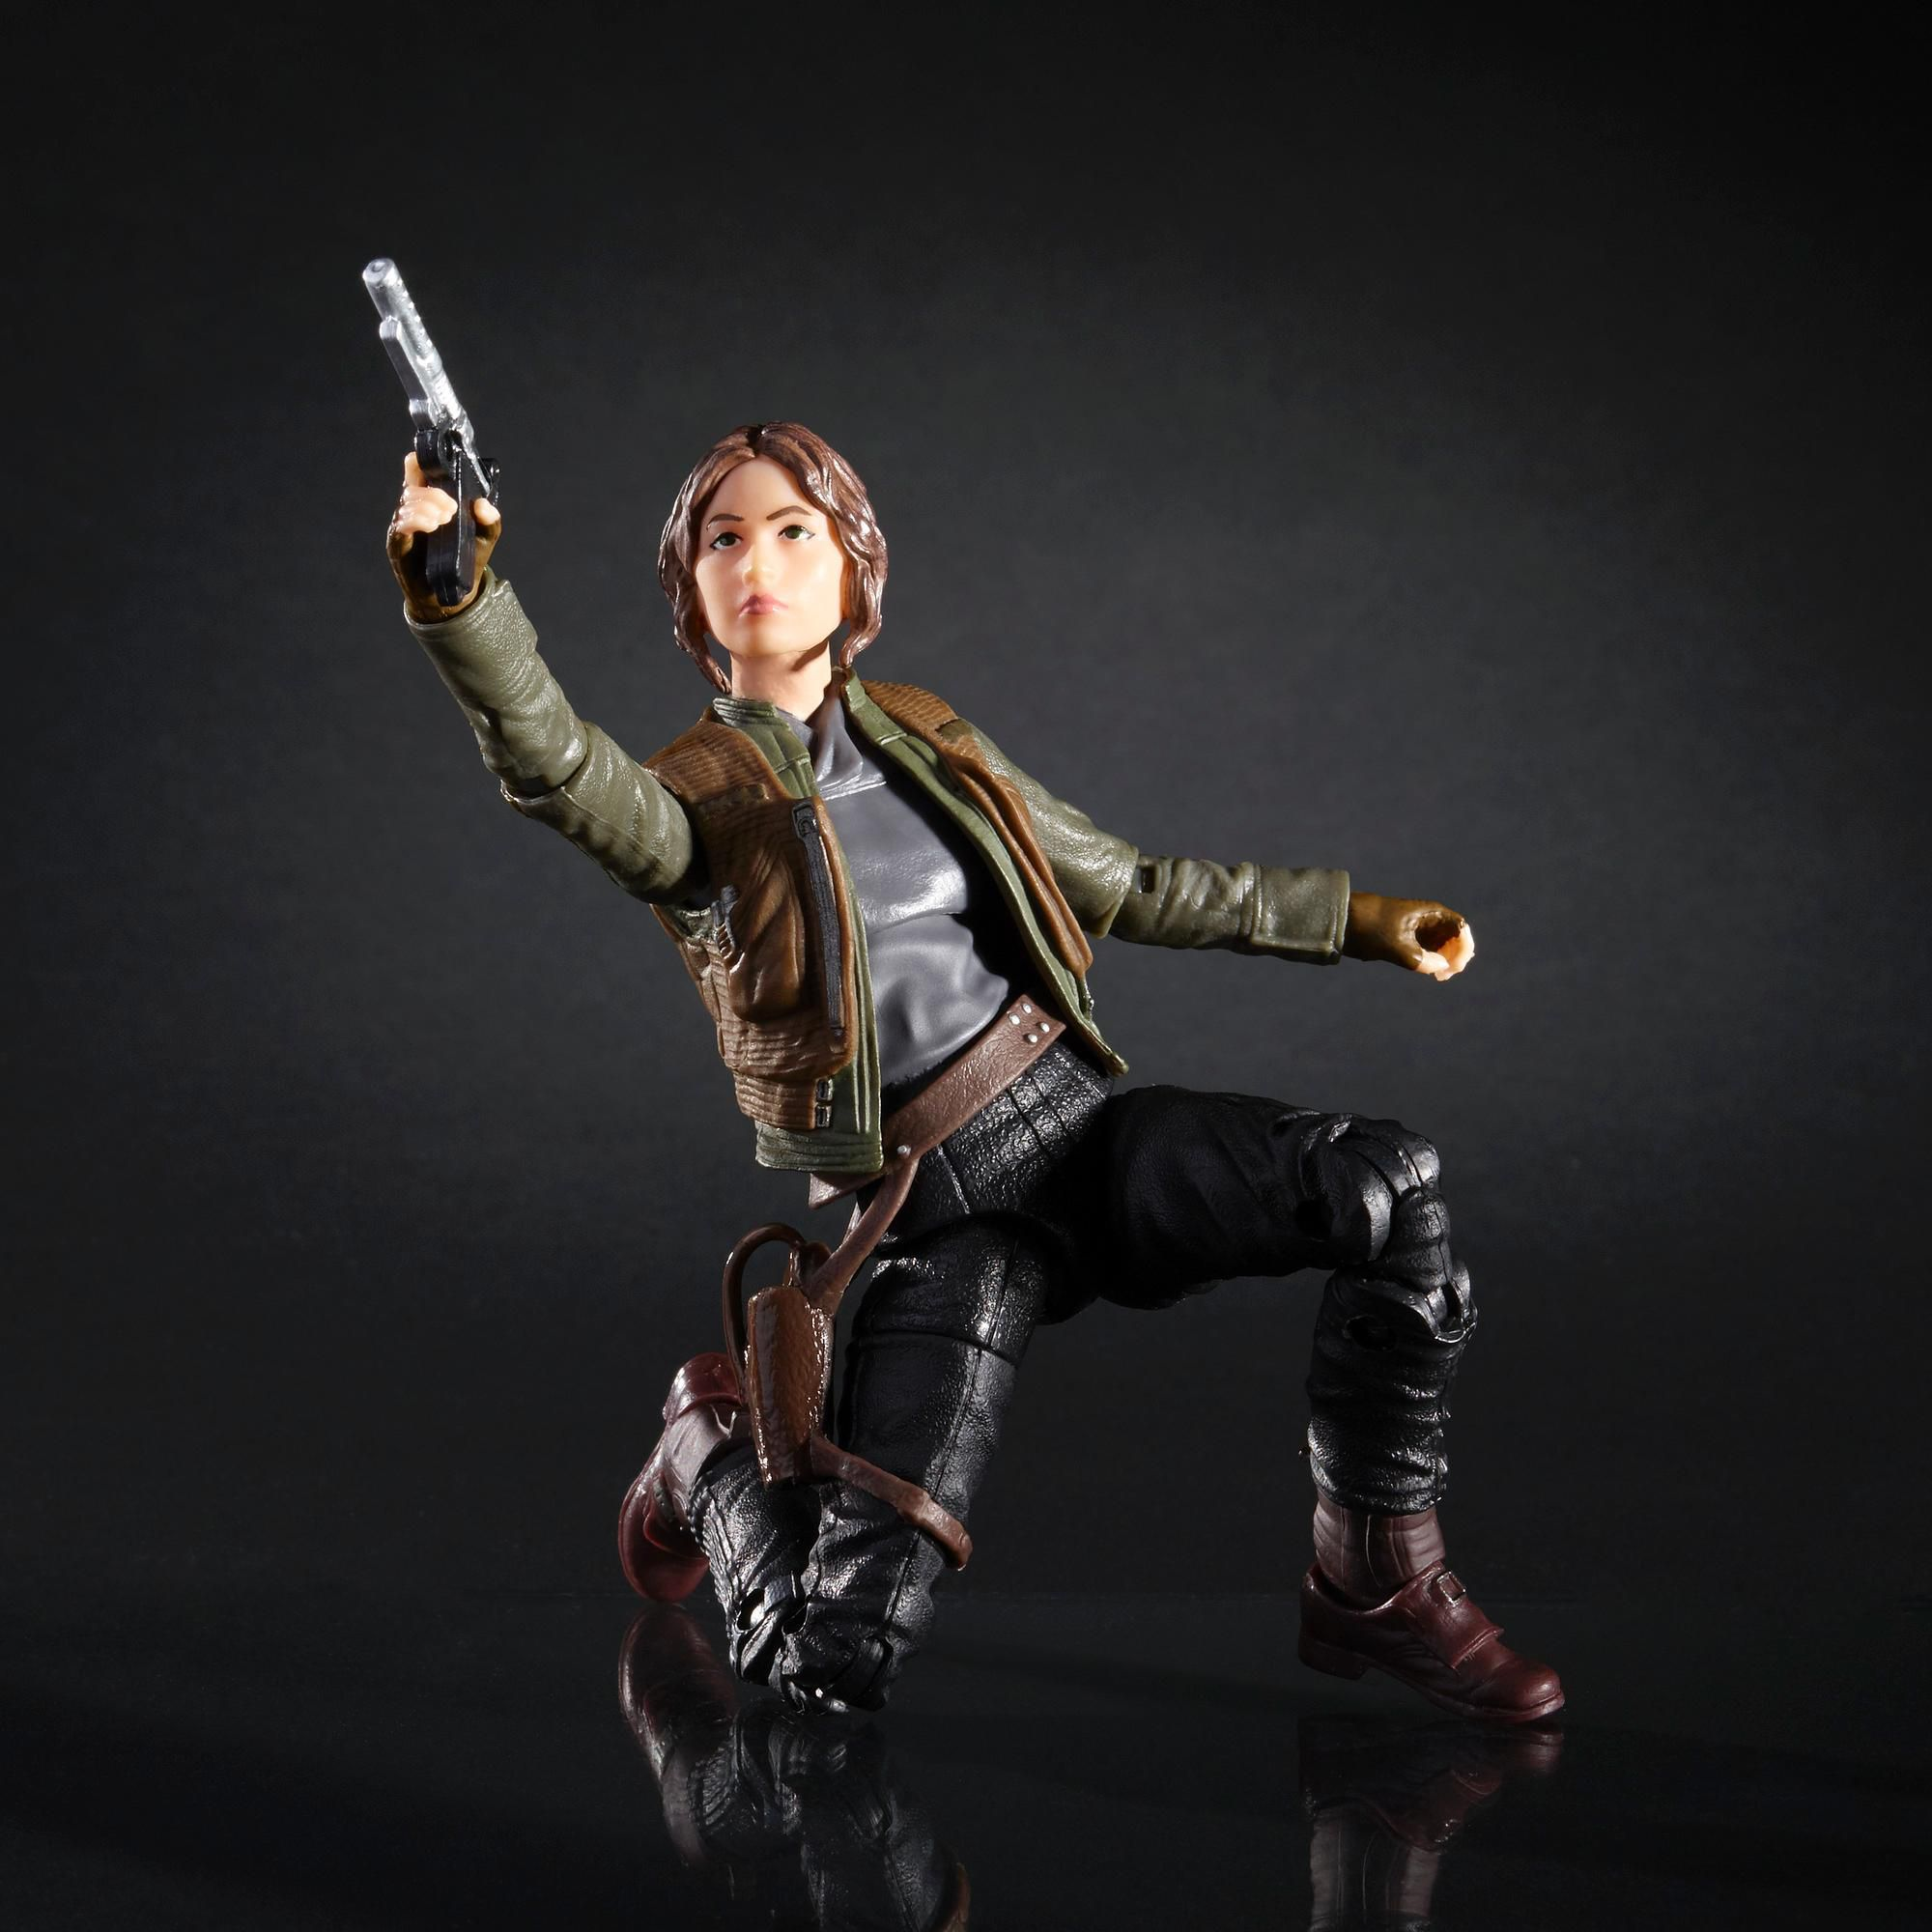 Star Wars The Black Series -Rogue One- Sargento Jyn Erso- Hasbro- B3834